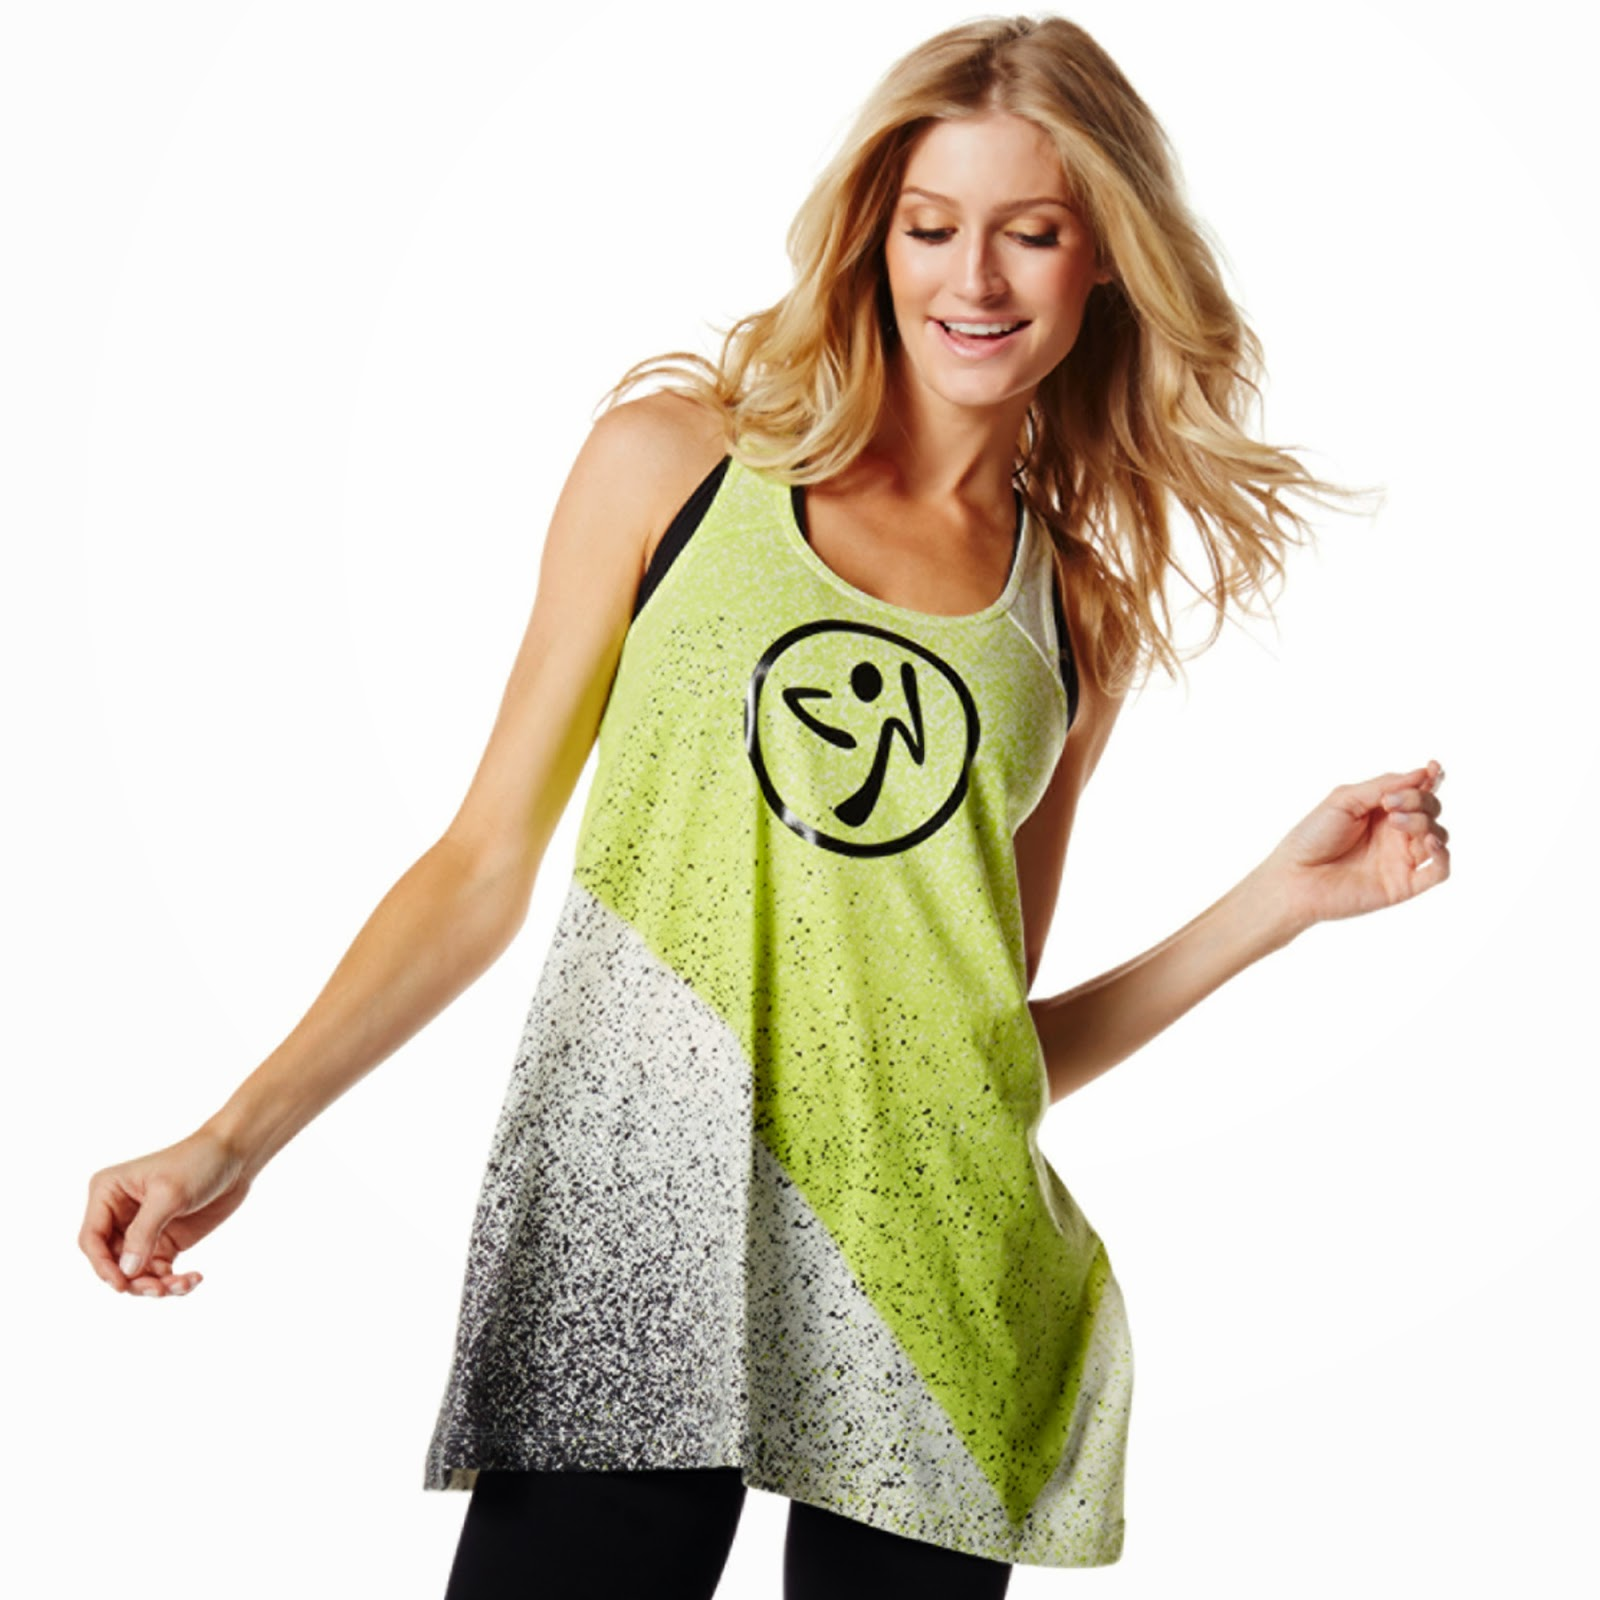 http://www.zumba.com/en-US/store/US/product/so-shaded-loose-racerback?color=Zumba%20Green